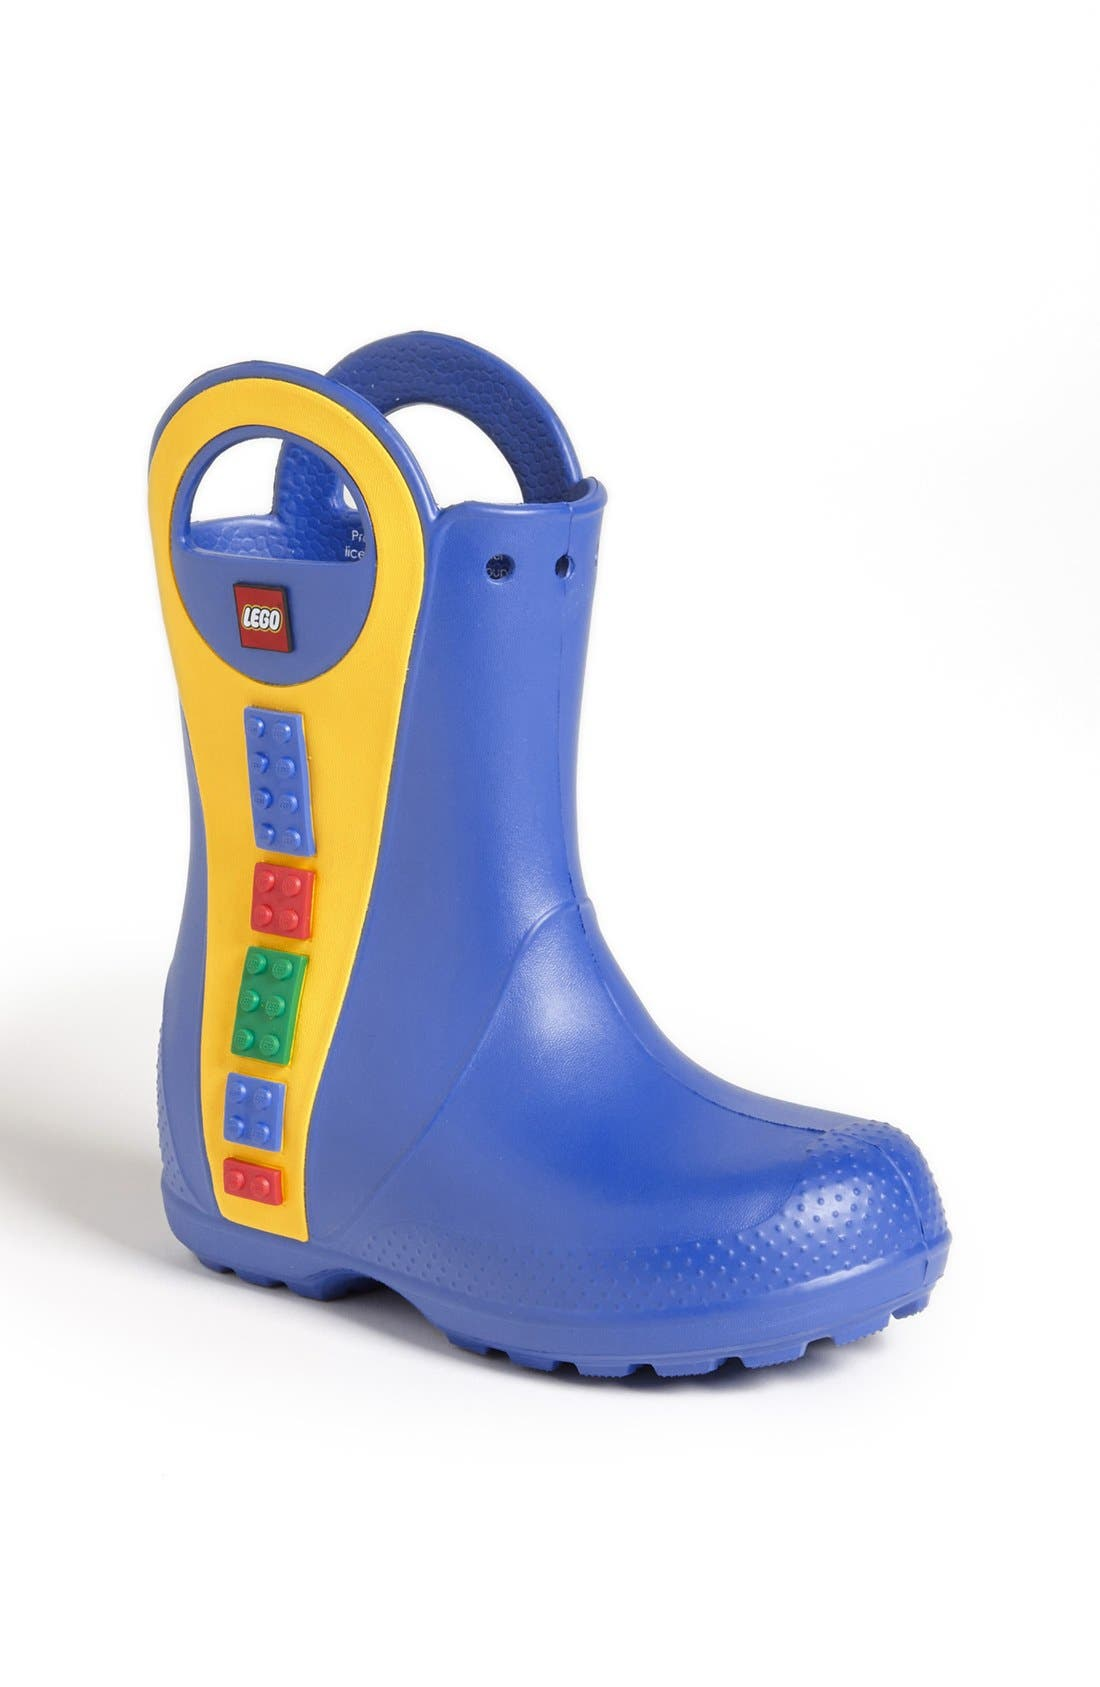 Main Image - CROCS™ 'Handle It - LEGO®' Rain Boot (Walker, Toddler & Little Kid)